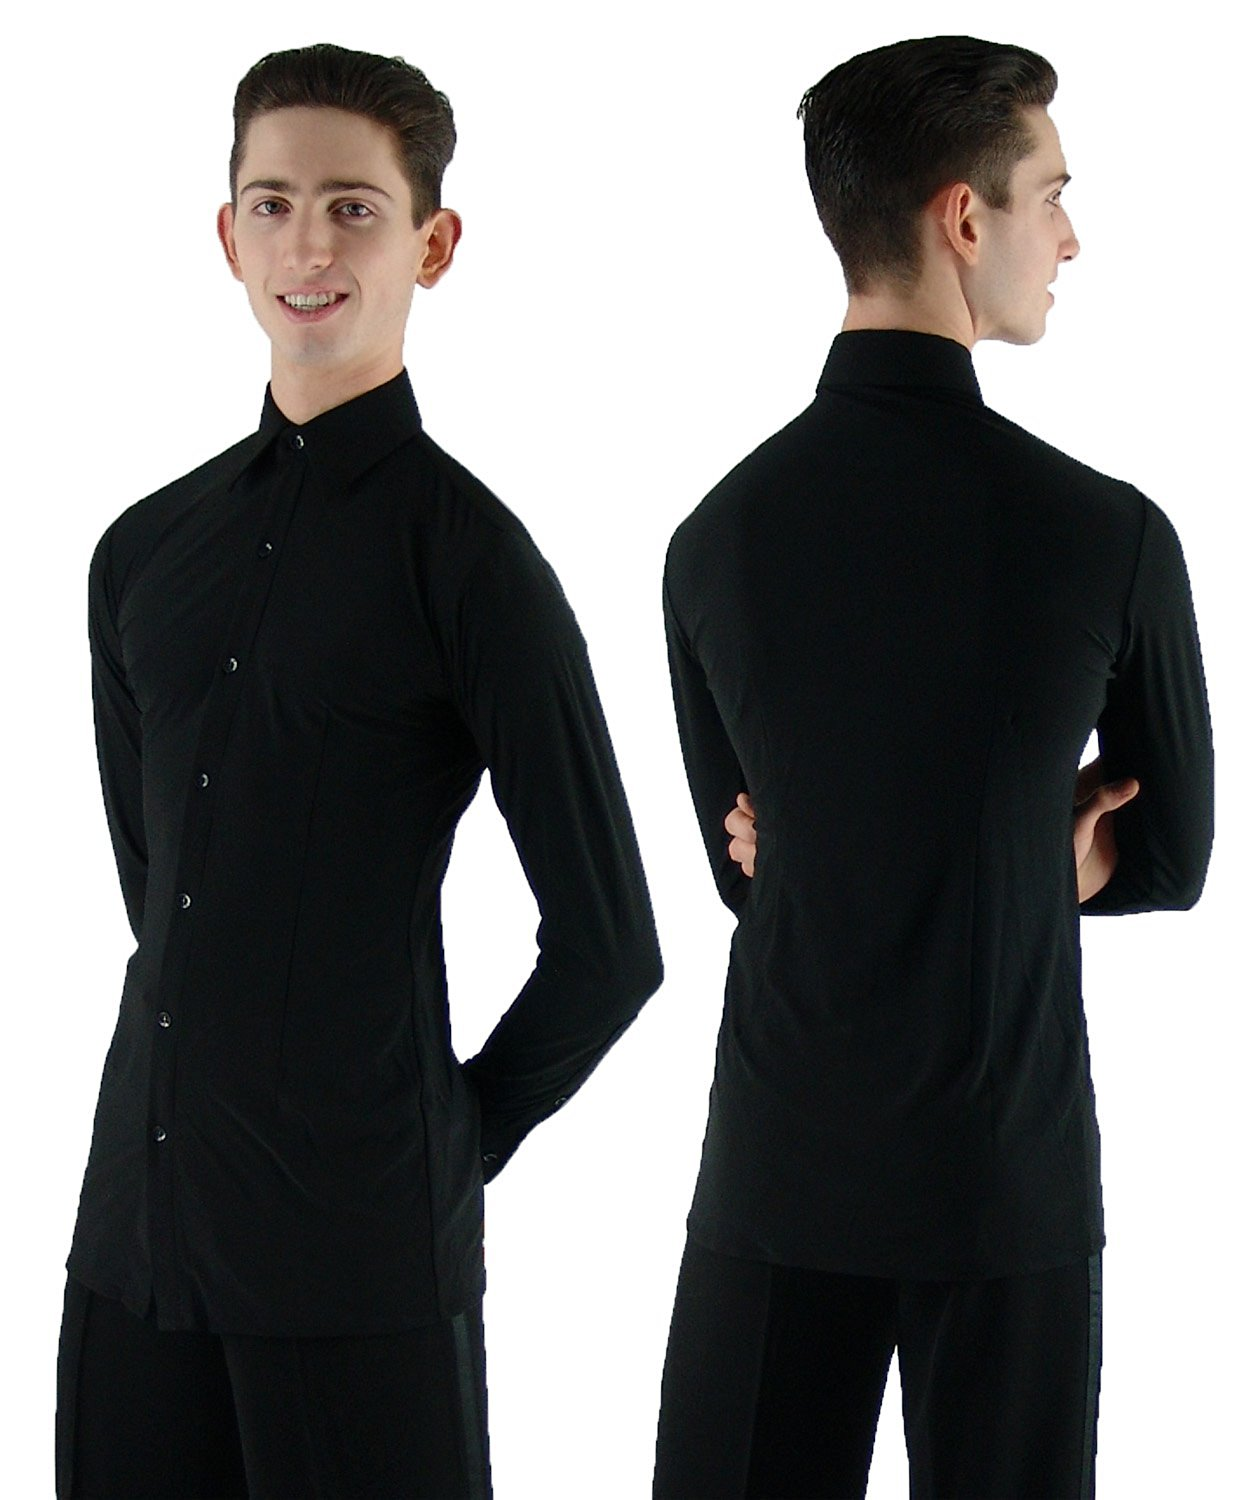 0343e051 Get Quotations · MS962 Black Mens Ballroom Smooth Rhythm Latin Dance Shirt